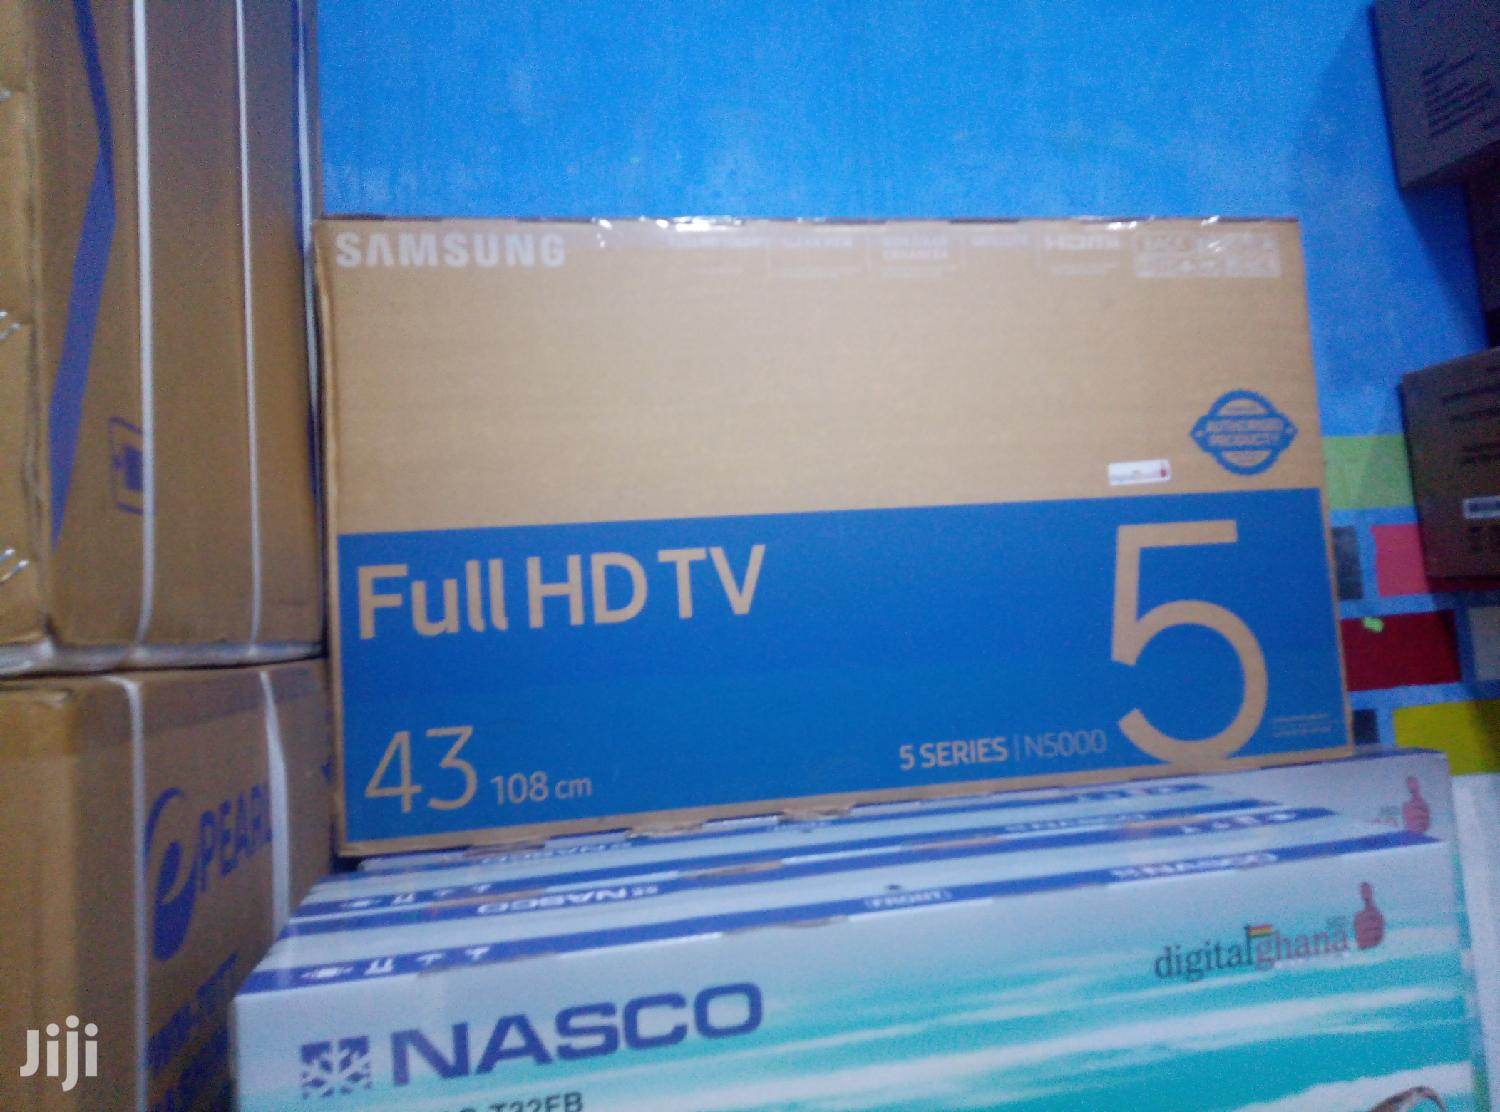 Buy Samsung 43 Digital Satellite TV